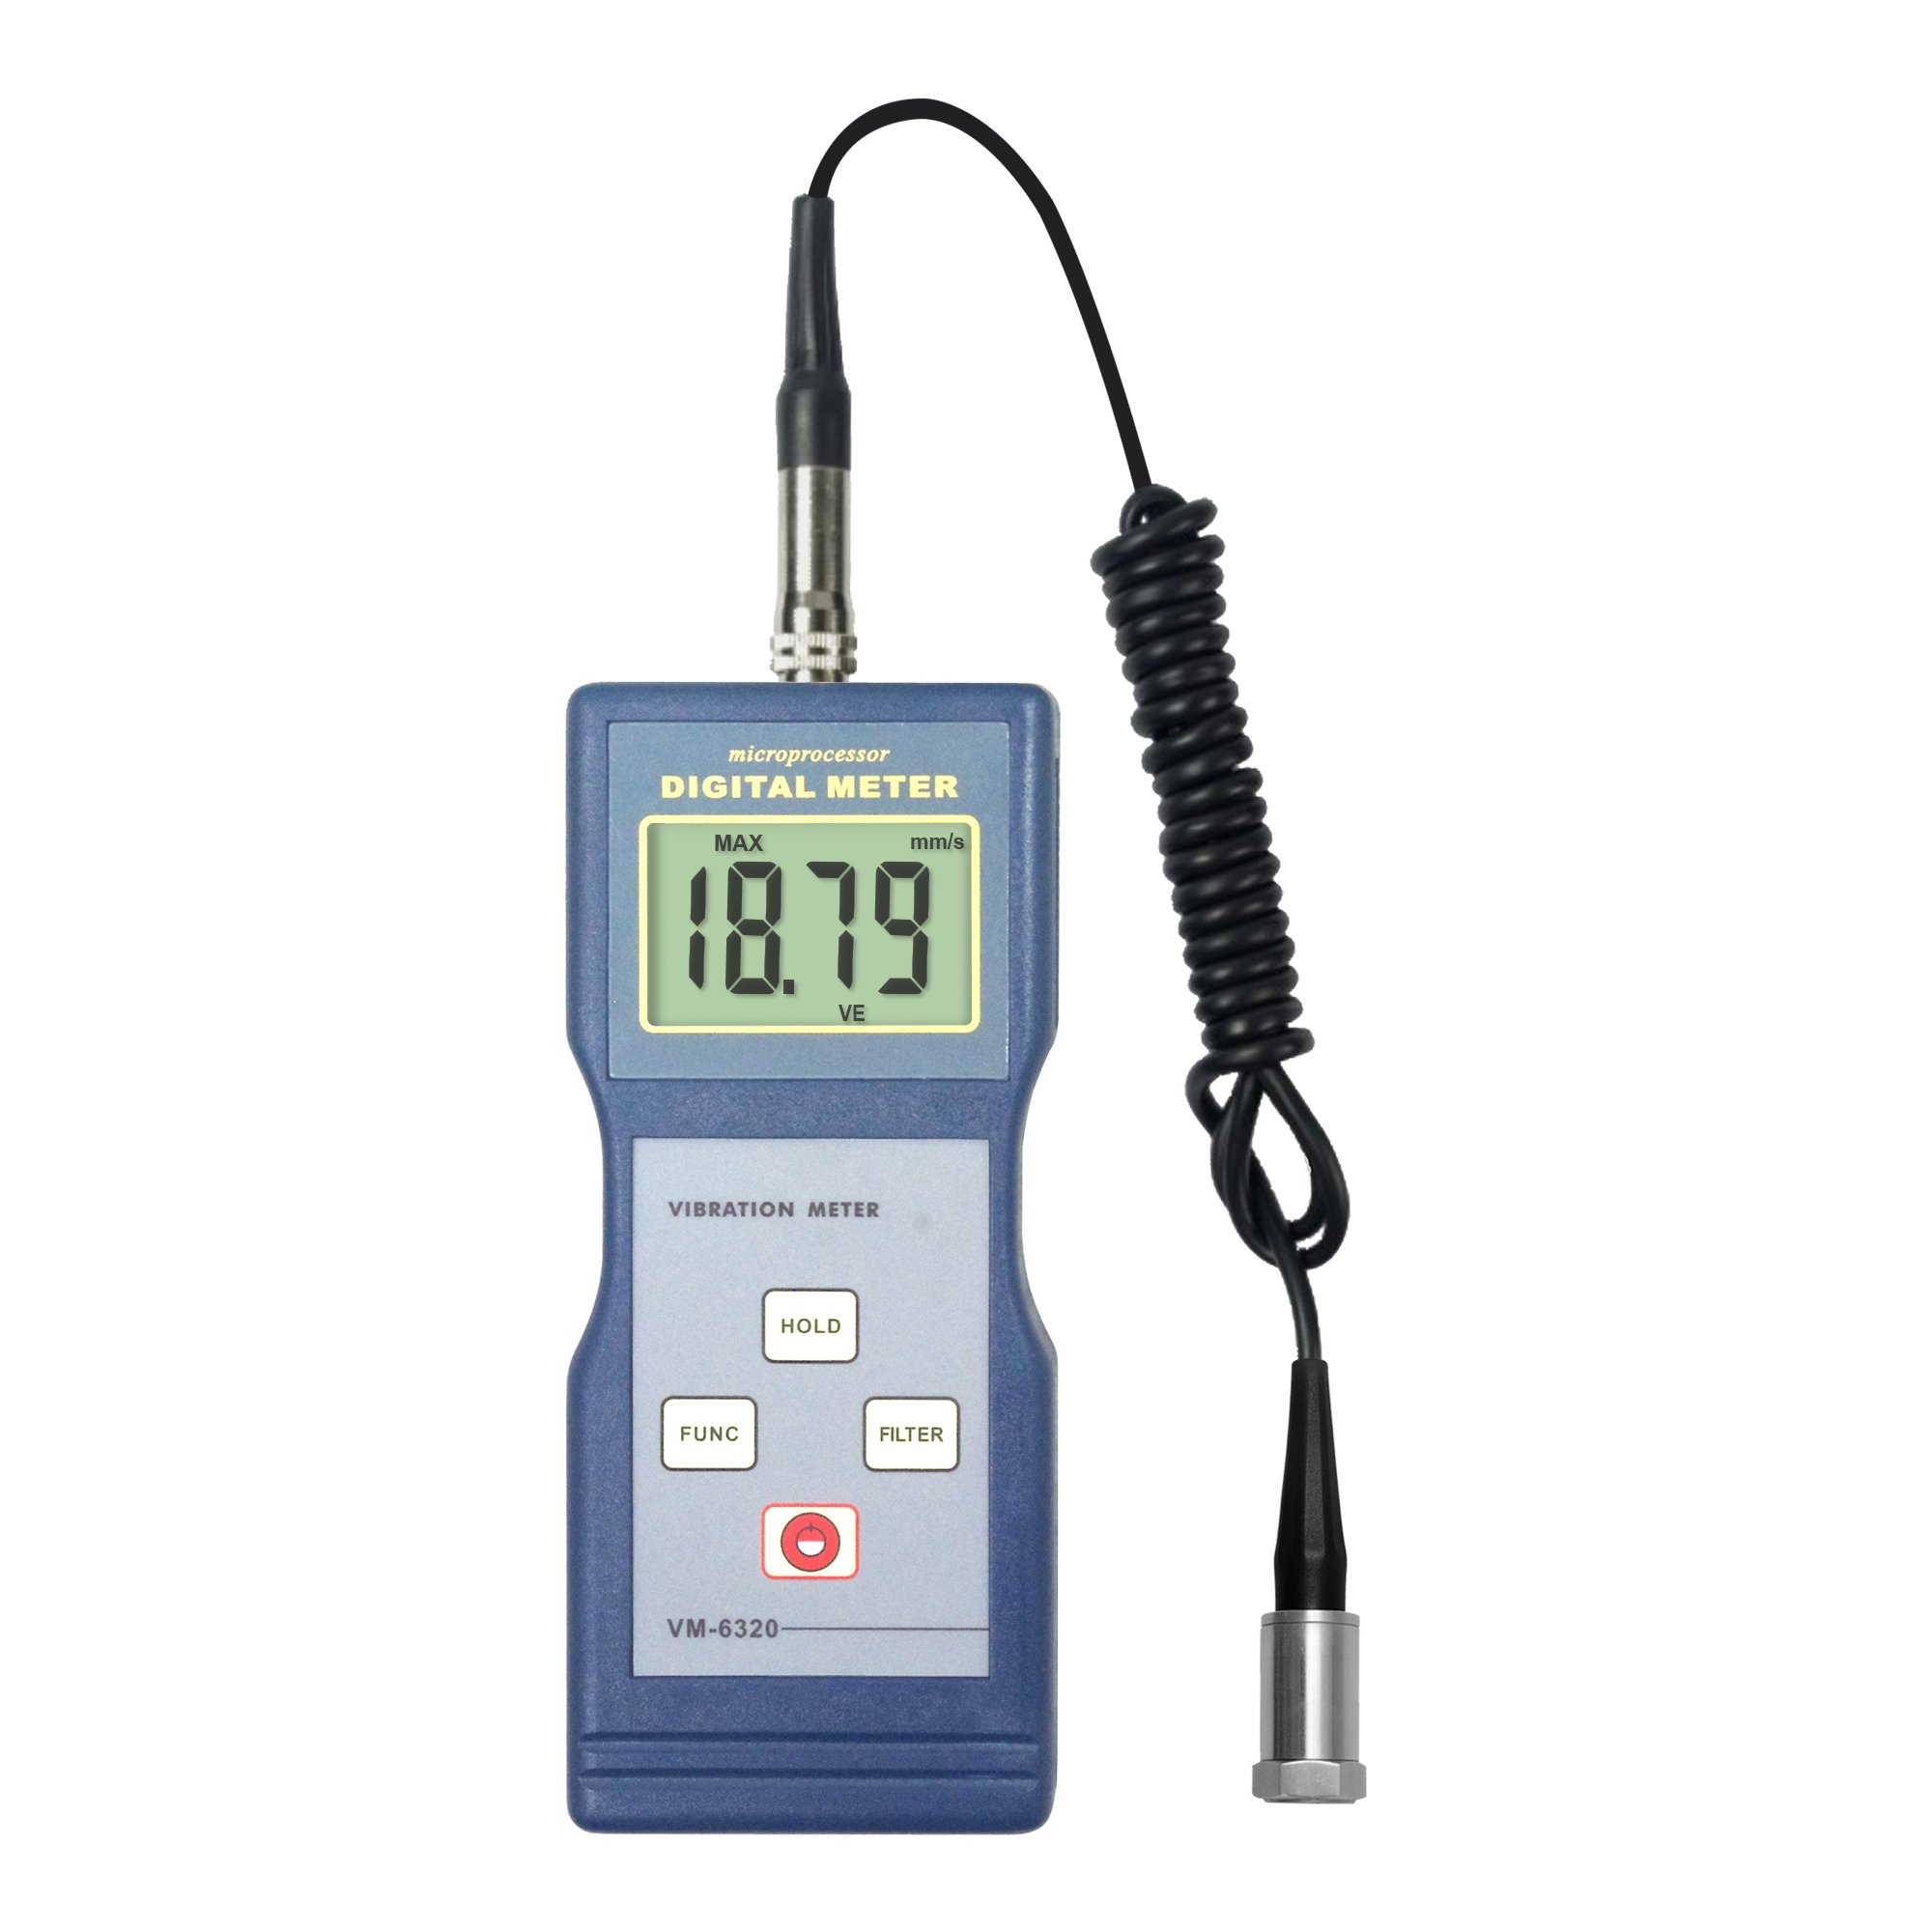 VM-6320 Portable Vibrometer Mechanical Vibrate Gauge Vibration Meter for Moving Machinery with RS232 Output